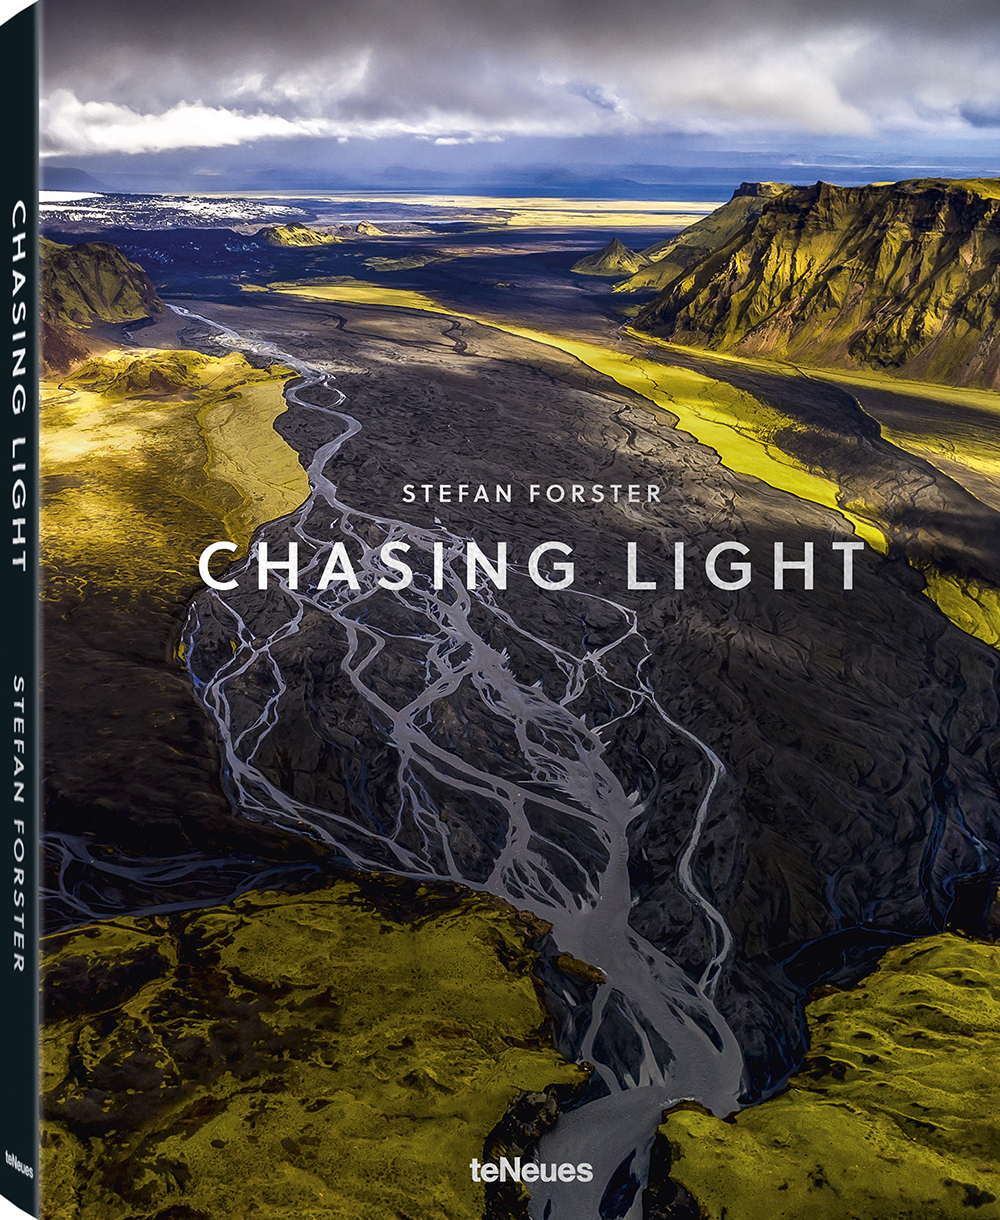 © Chasing Light by Stefan Forster, erschienen bei teNeues, € 39,90,  www.teneues.com , Photo © 2017 Stefan Forster. All rights reserved.  www.stefanforster.com